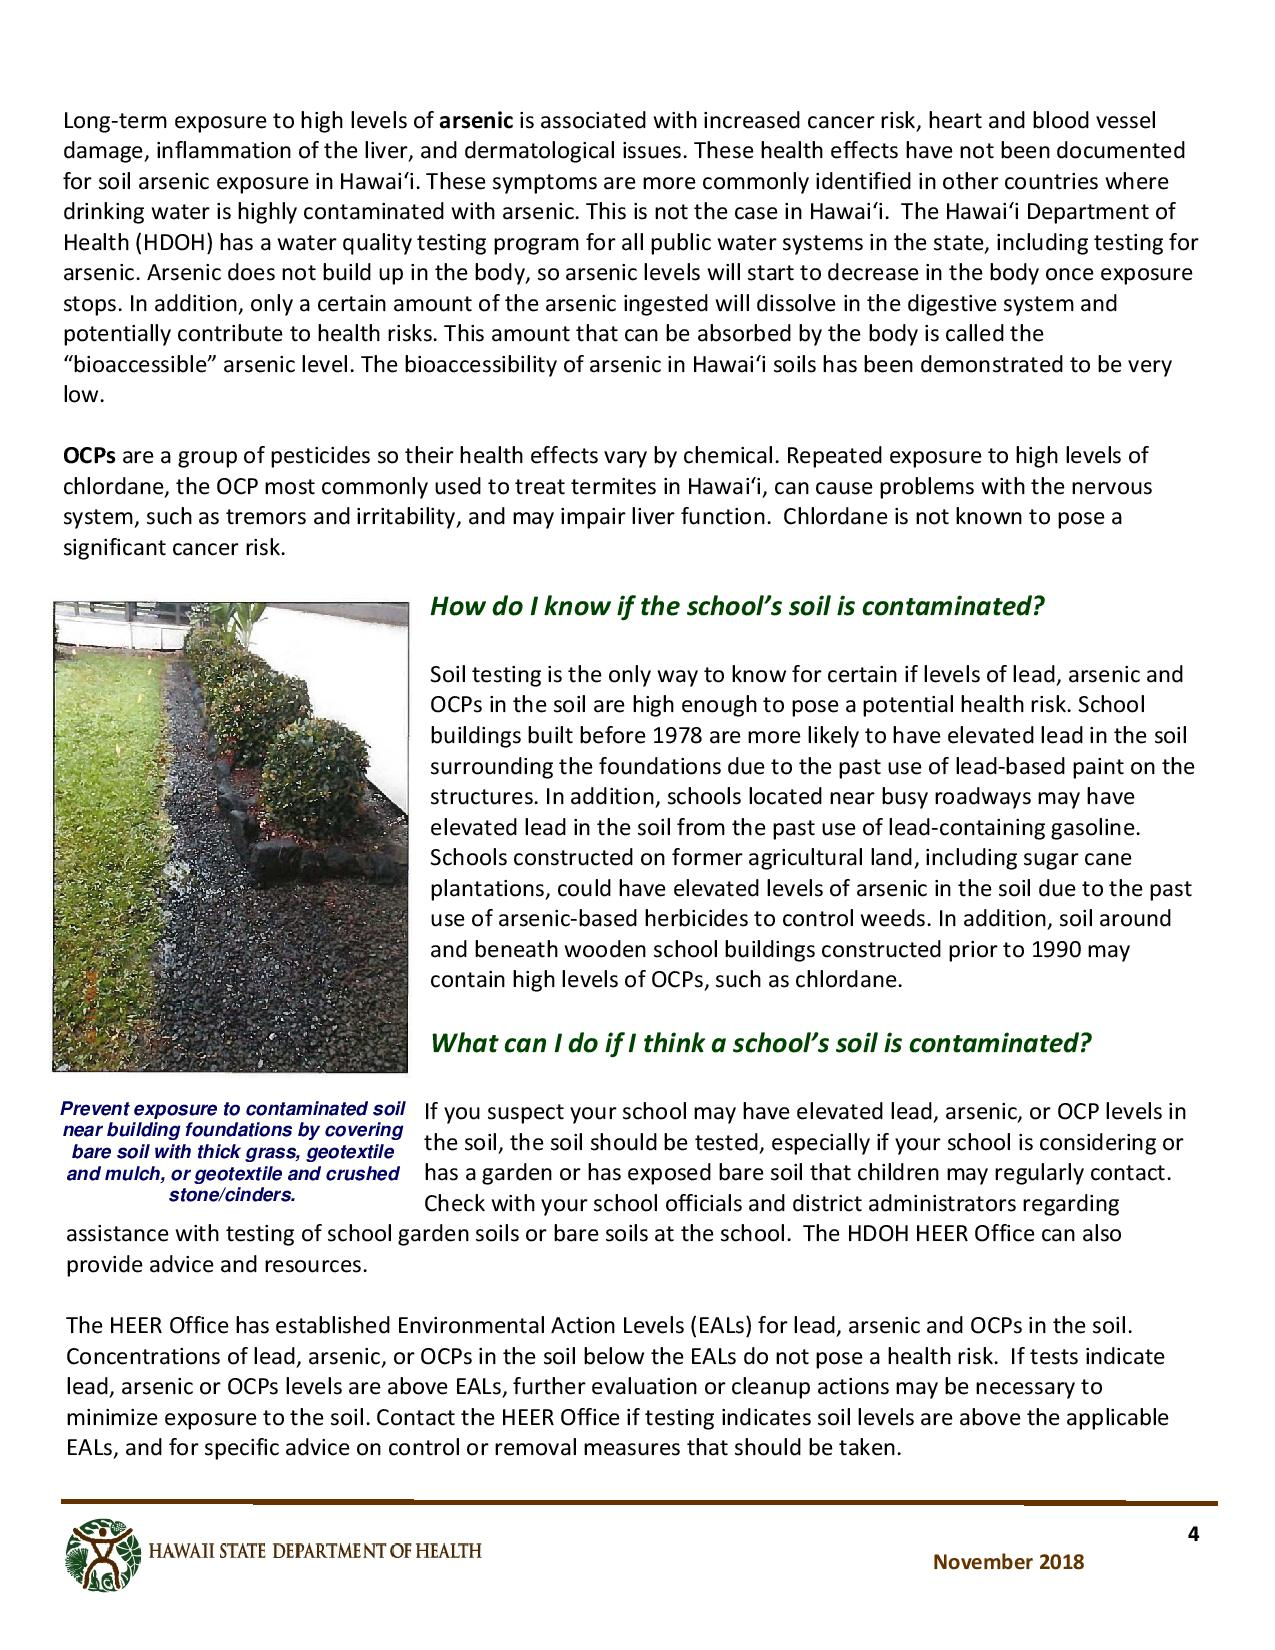 Contaminated Soils Schools Fact Sheet-page-004.jpg